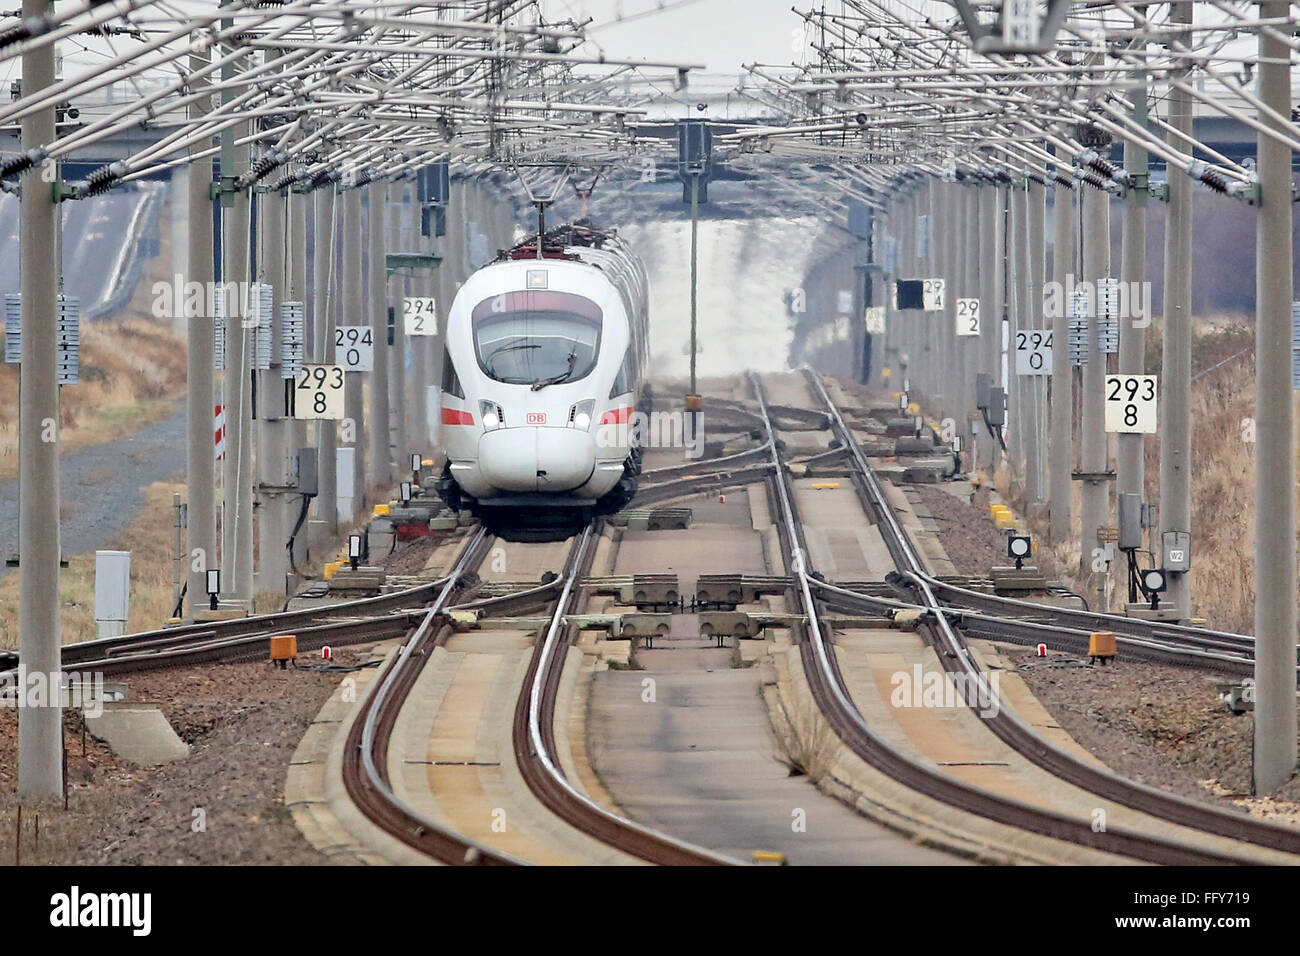 Schkeuditz, Germany. 16th Feb, 2016. An ICE tilting train passes the station 'Leipzig/Halle Airport' in Schkeuditz, Stock Photo